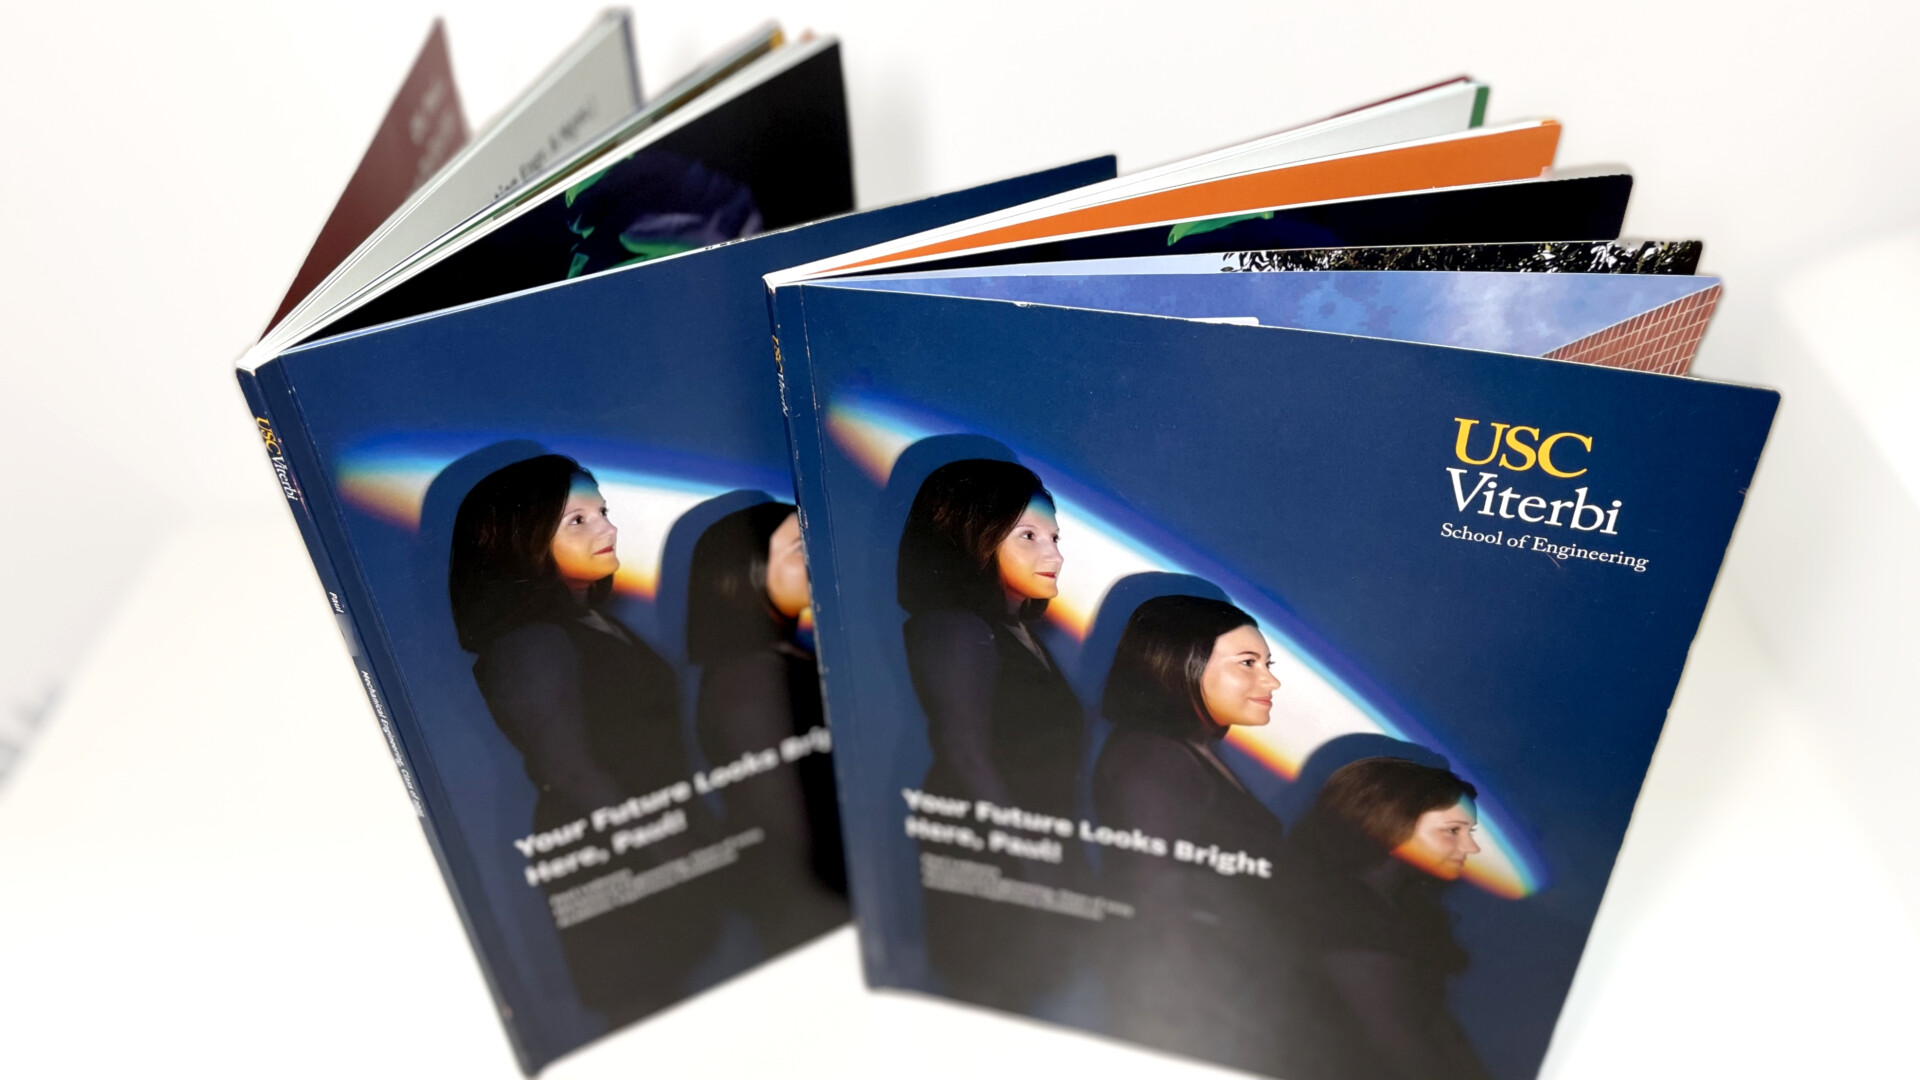 Print On Demand, Personalized Books for USC Viterbi School of Engineering